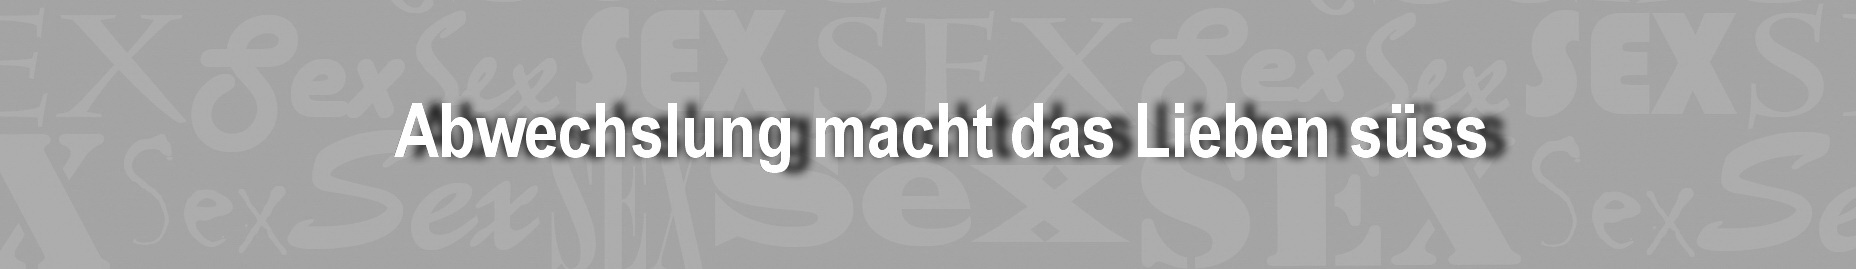 Sex_Mosaik_showcase_mit_Text_2